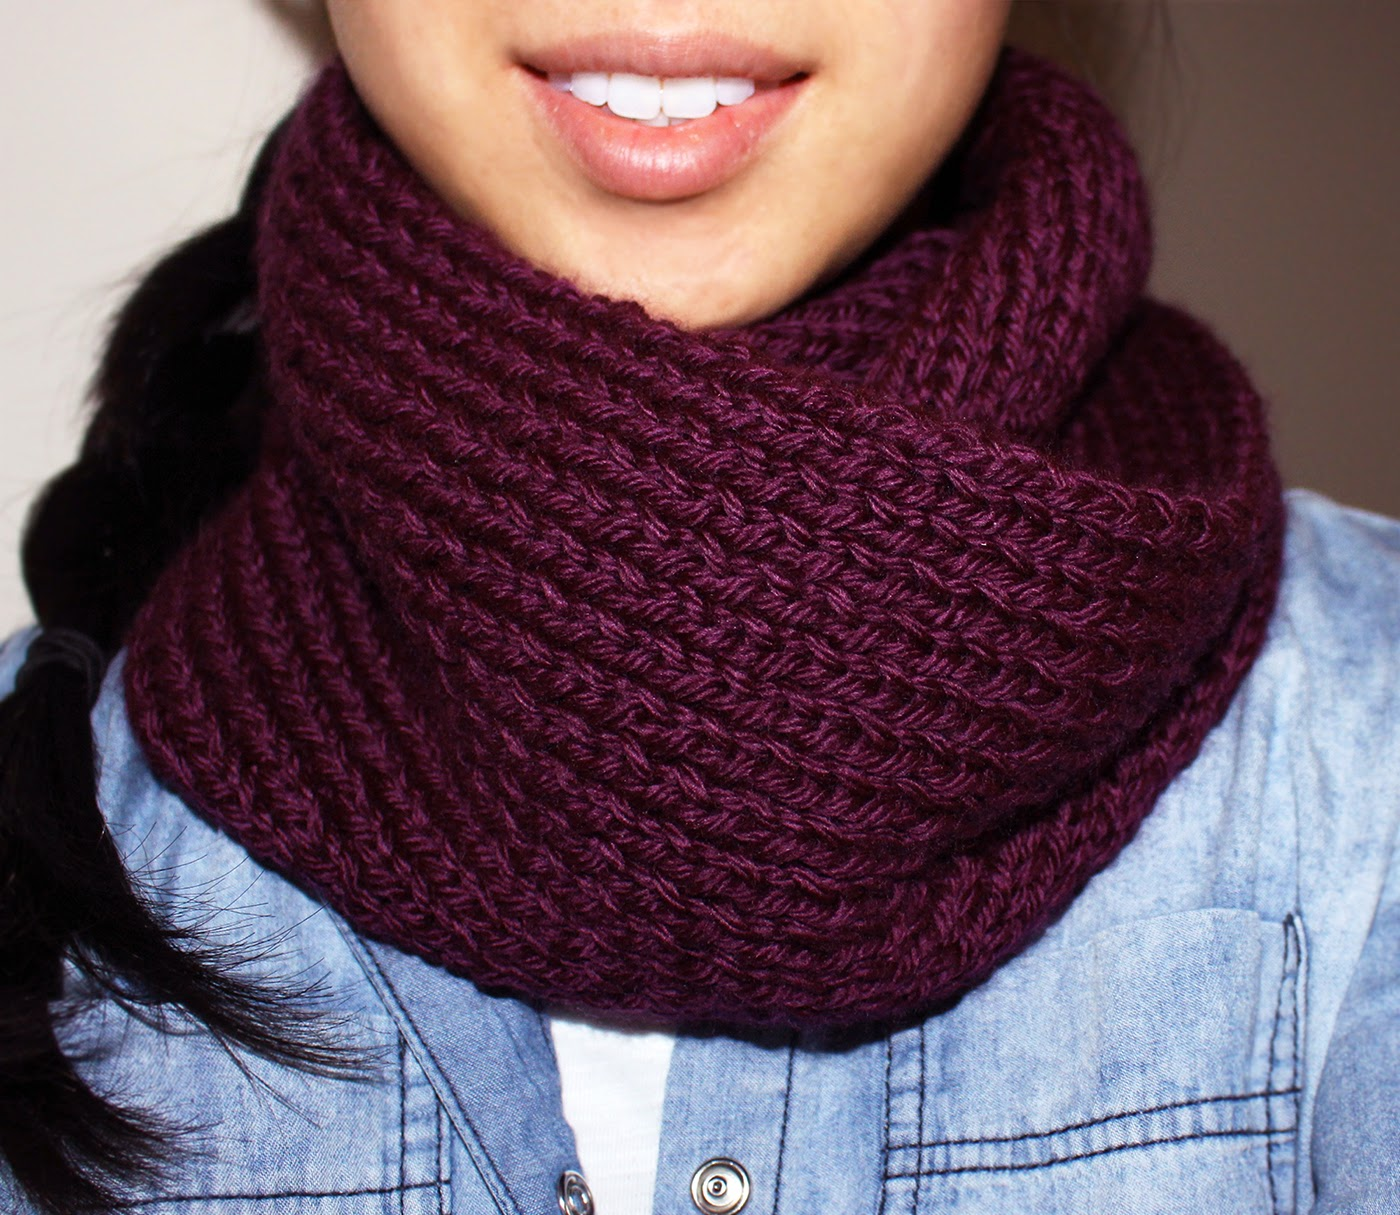 Knitting Pattern For Simple Scarf : Purllin: Acai Infinity Circle Scarf [free knitting pattern]